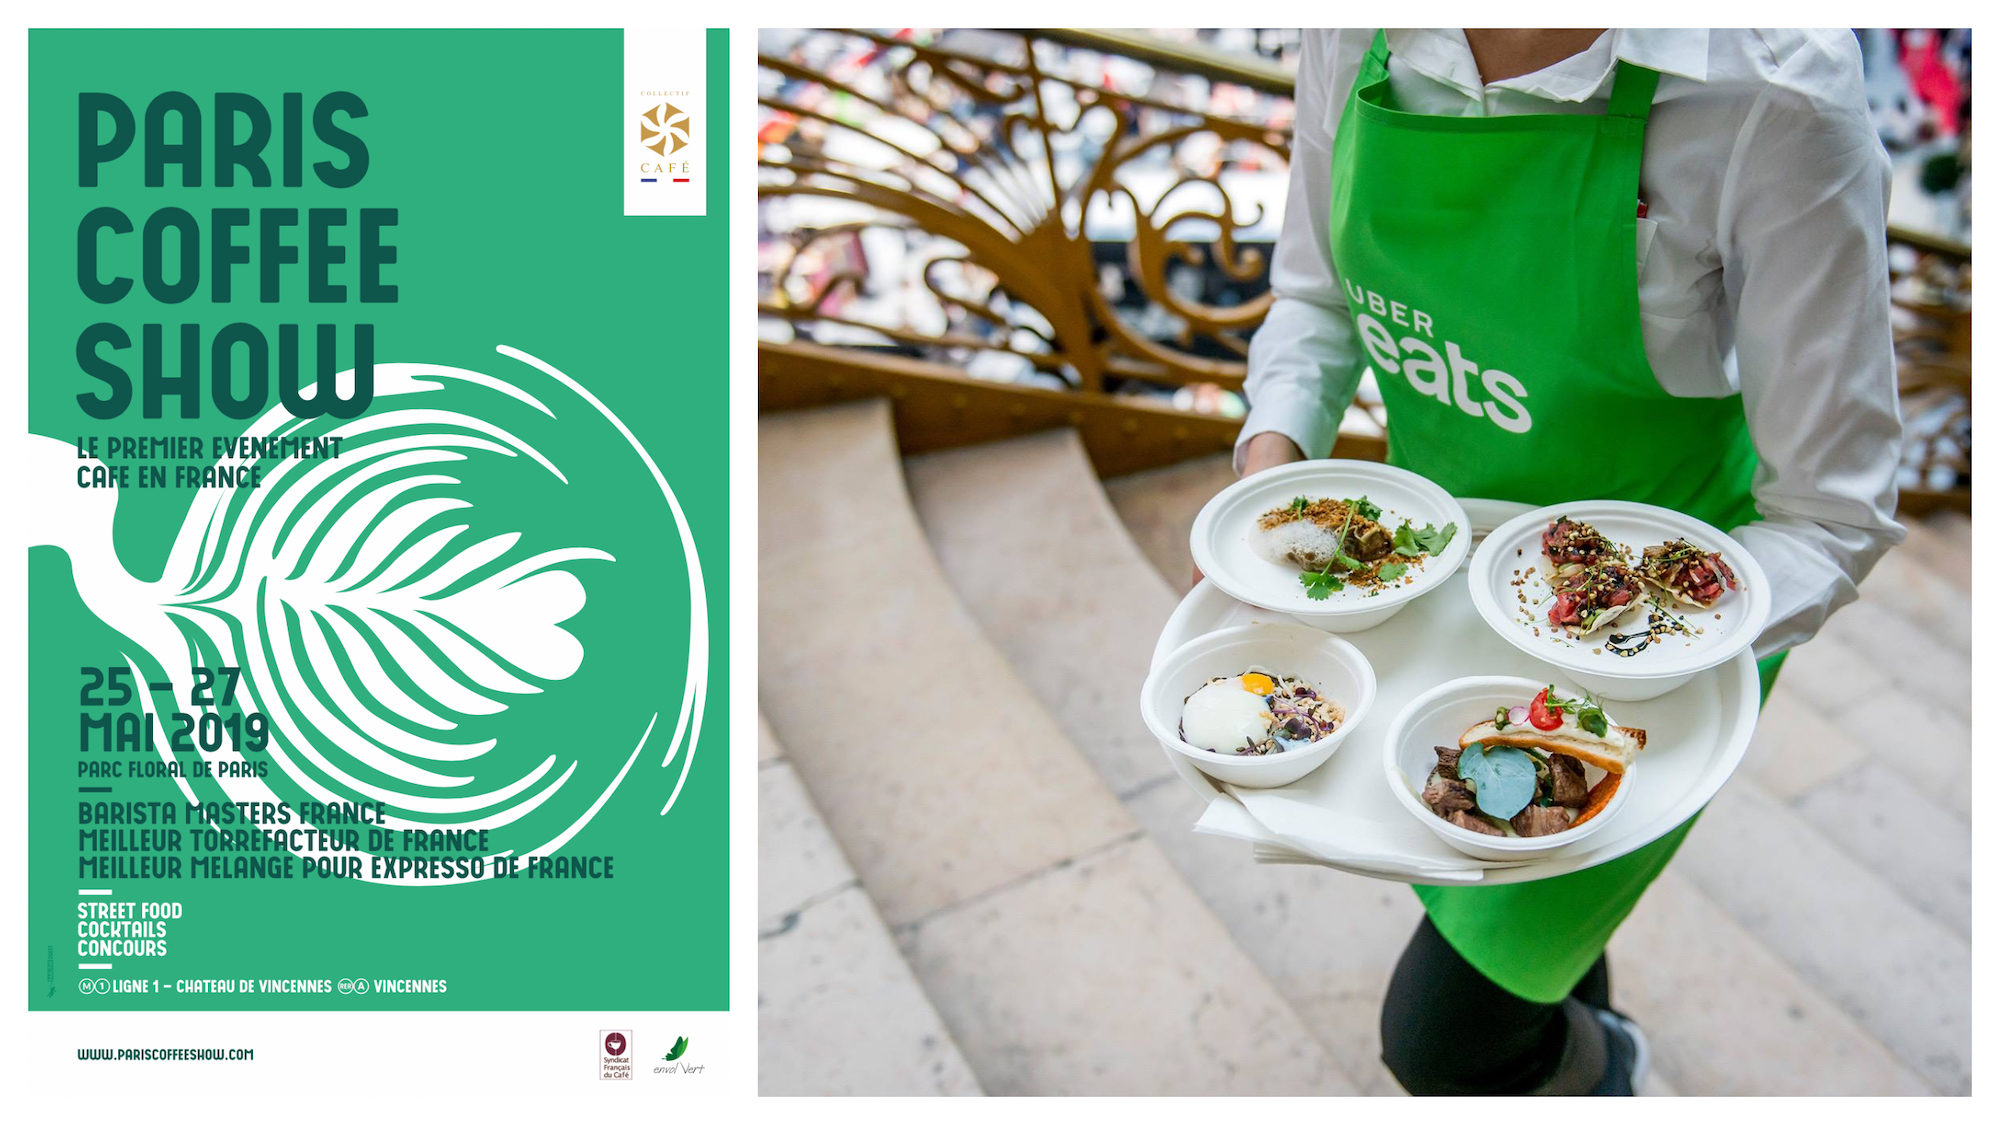 A poster for the Paris coffee show this May (left). A staff member of Taste of Paris carrying a tray of dishes to sample (right).